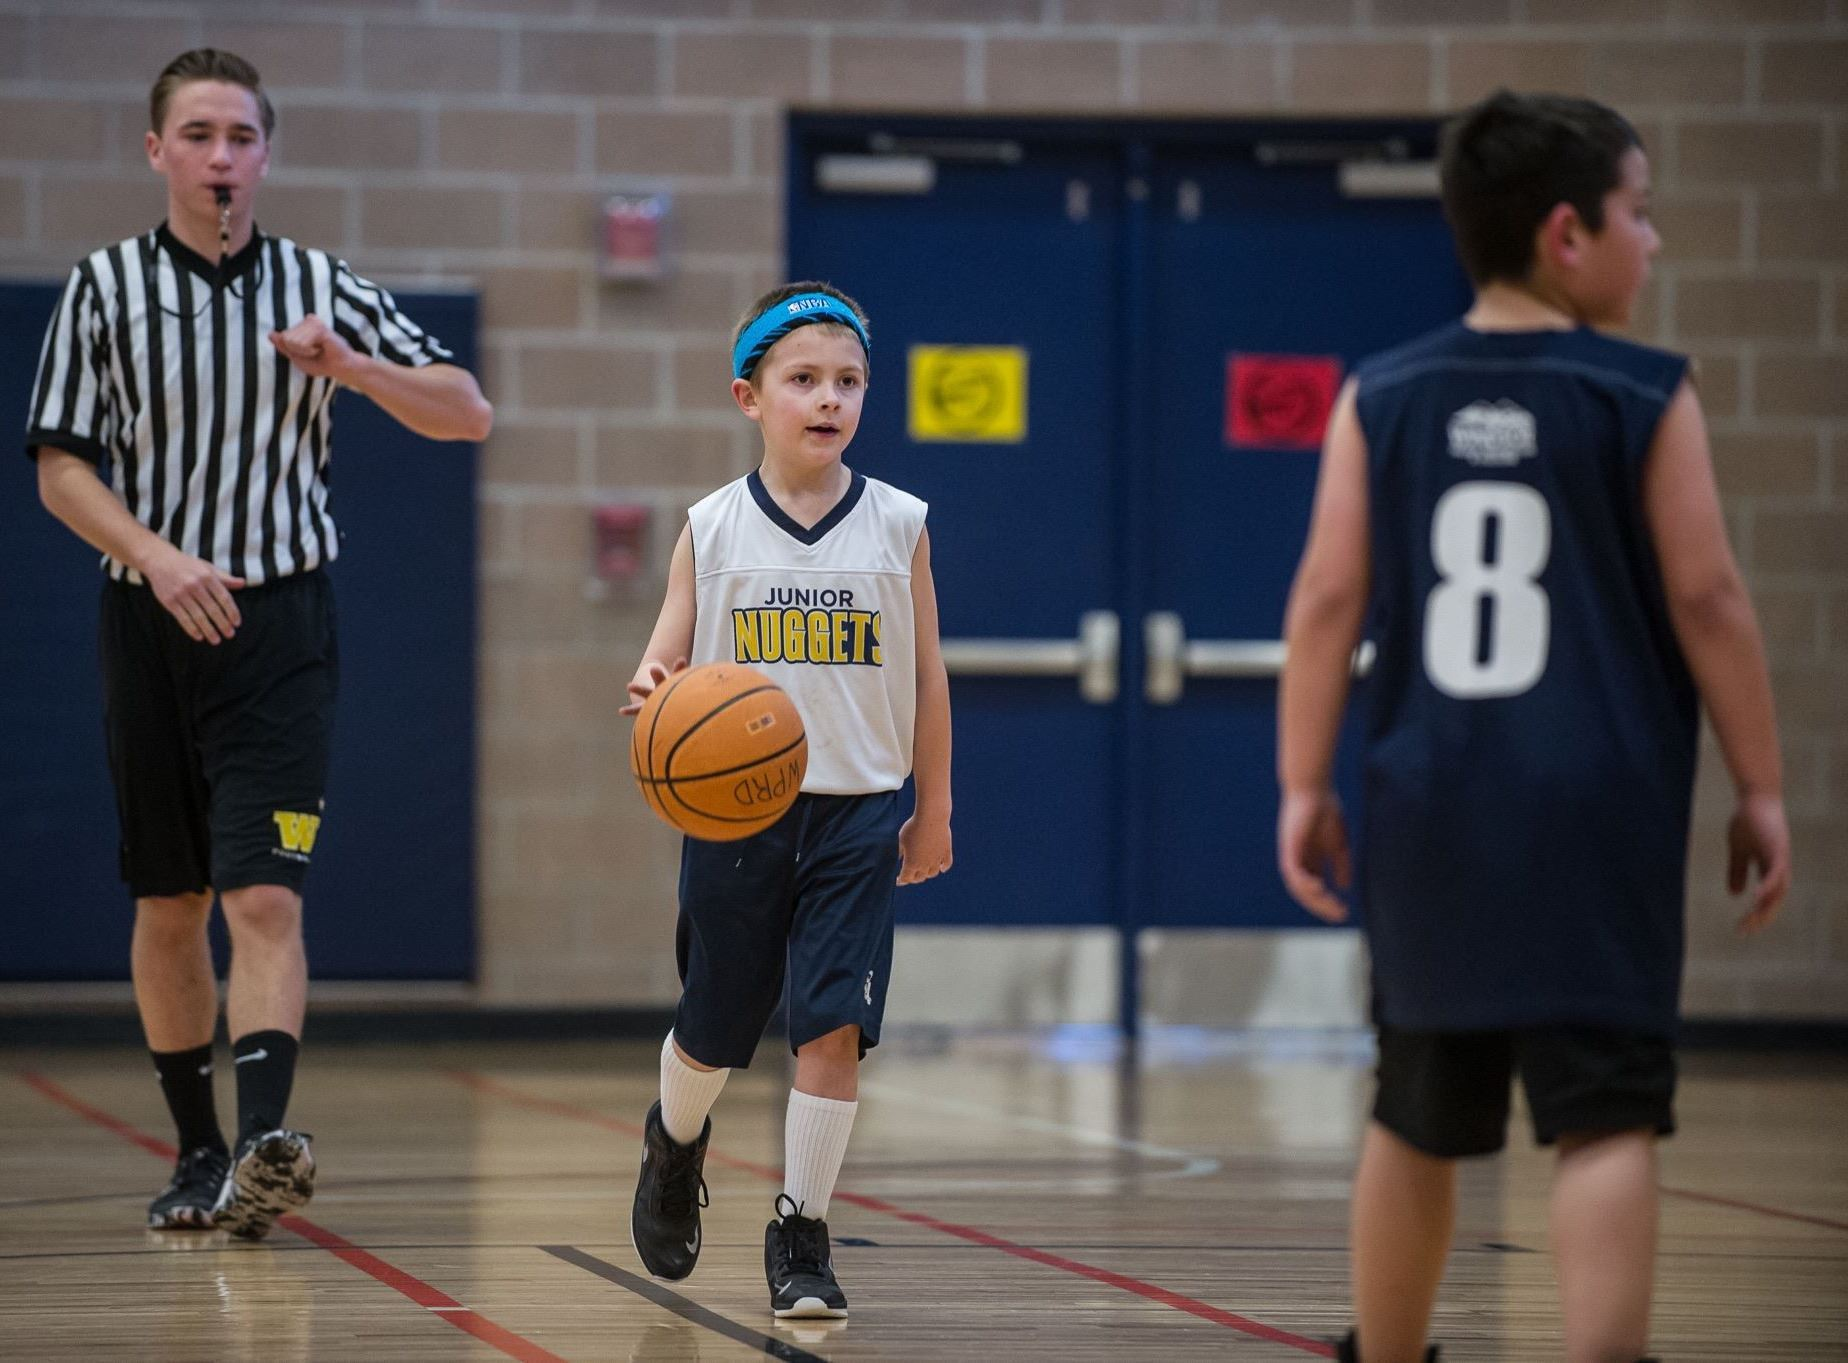 Boy Dribbling Basketball Followed by Referee